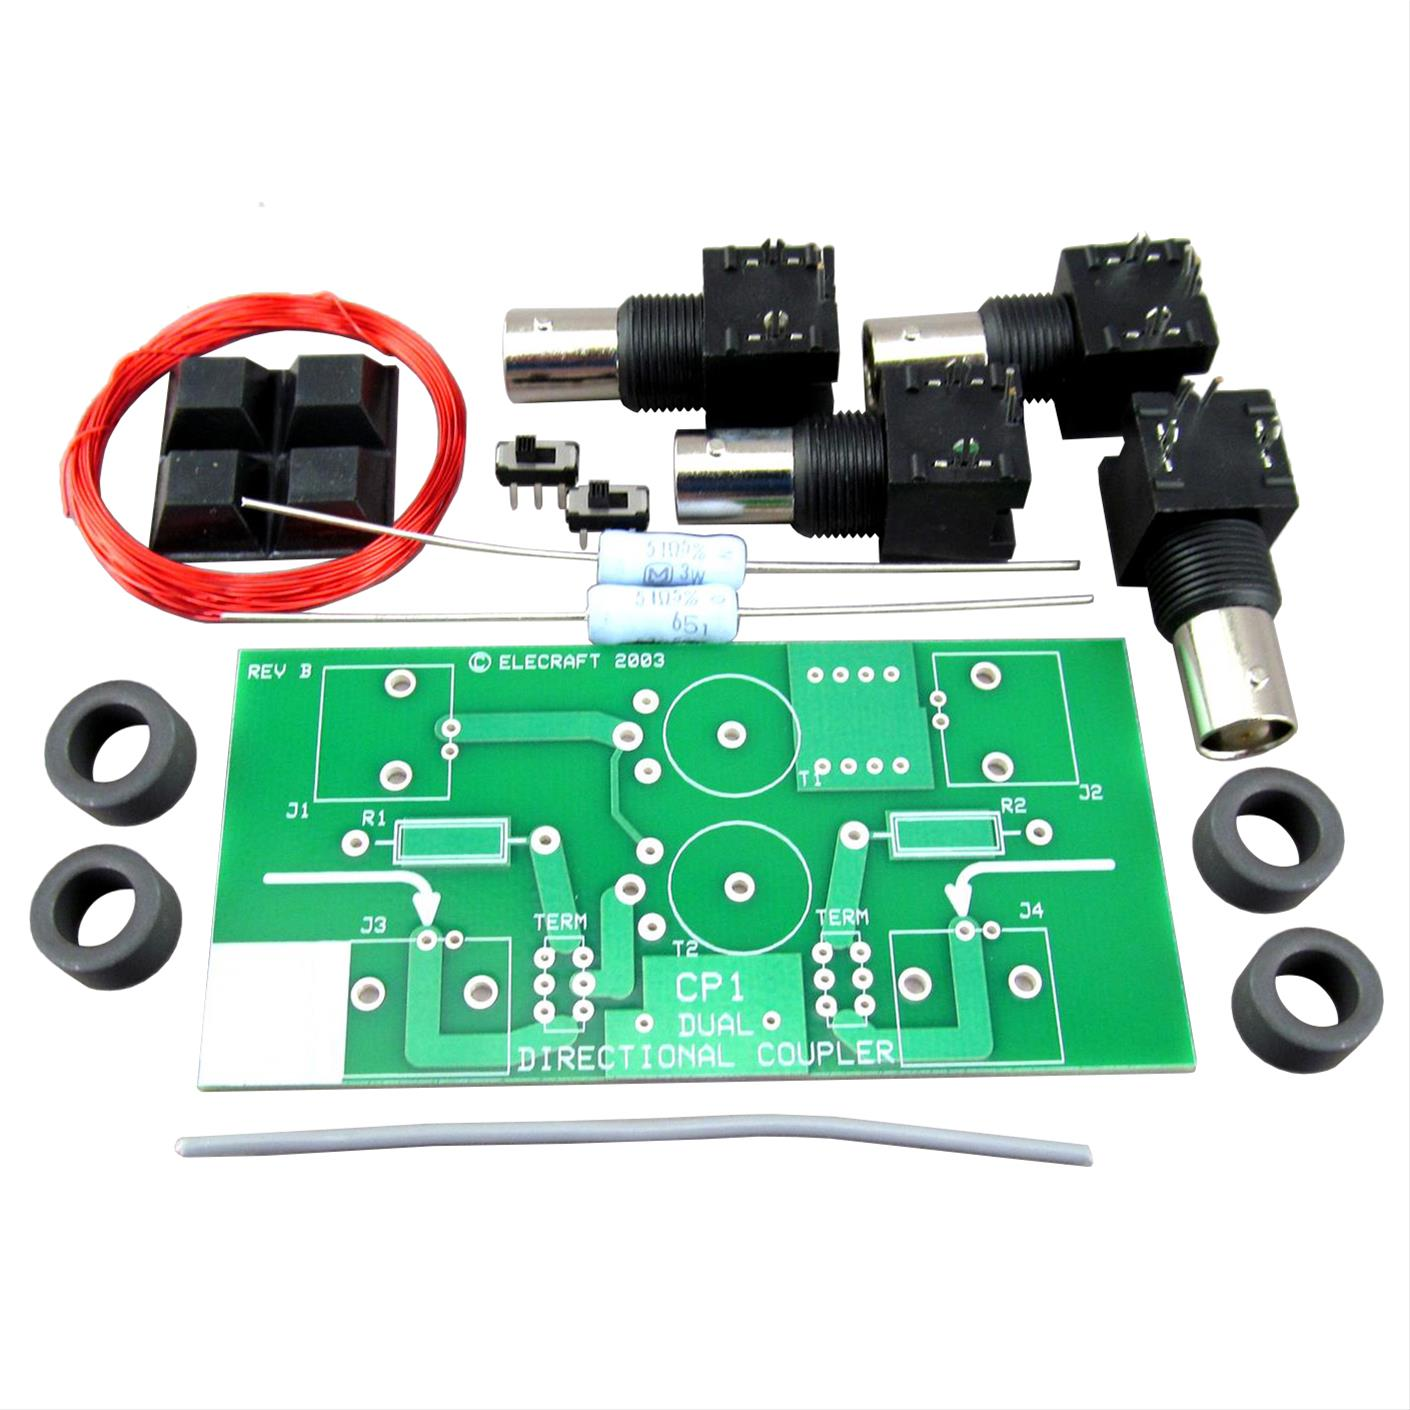 Elecraft CP1 Dual Directional Coupler Kits CP1